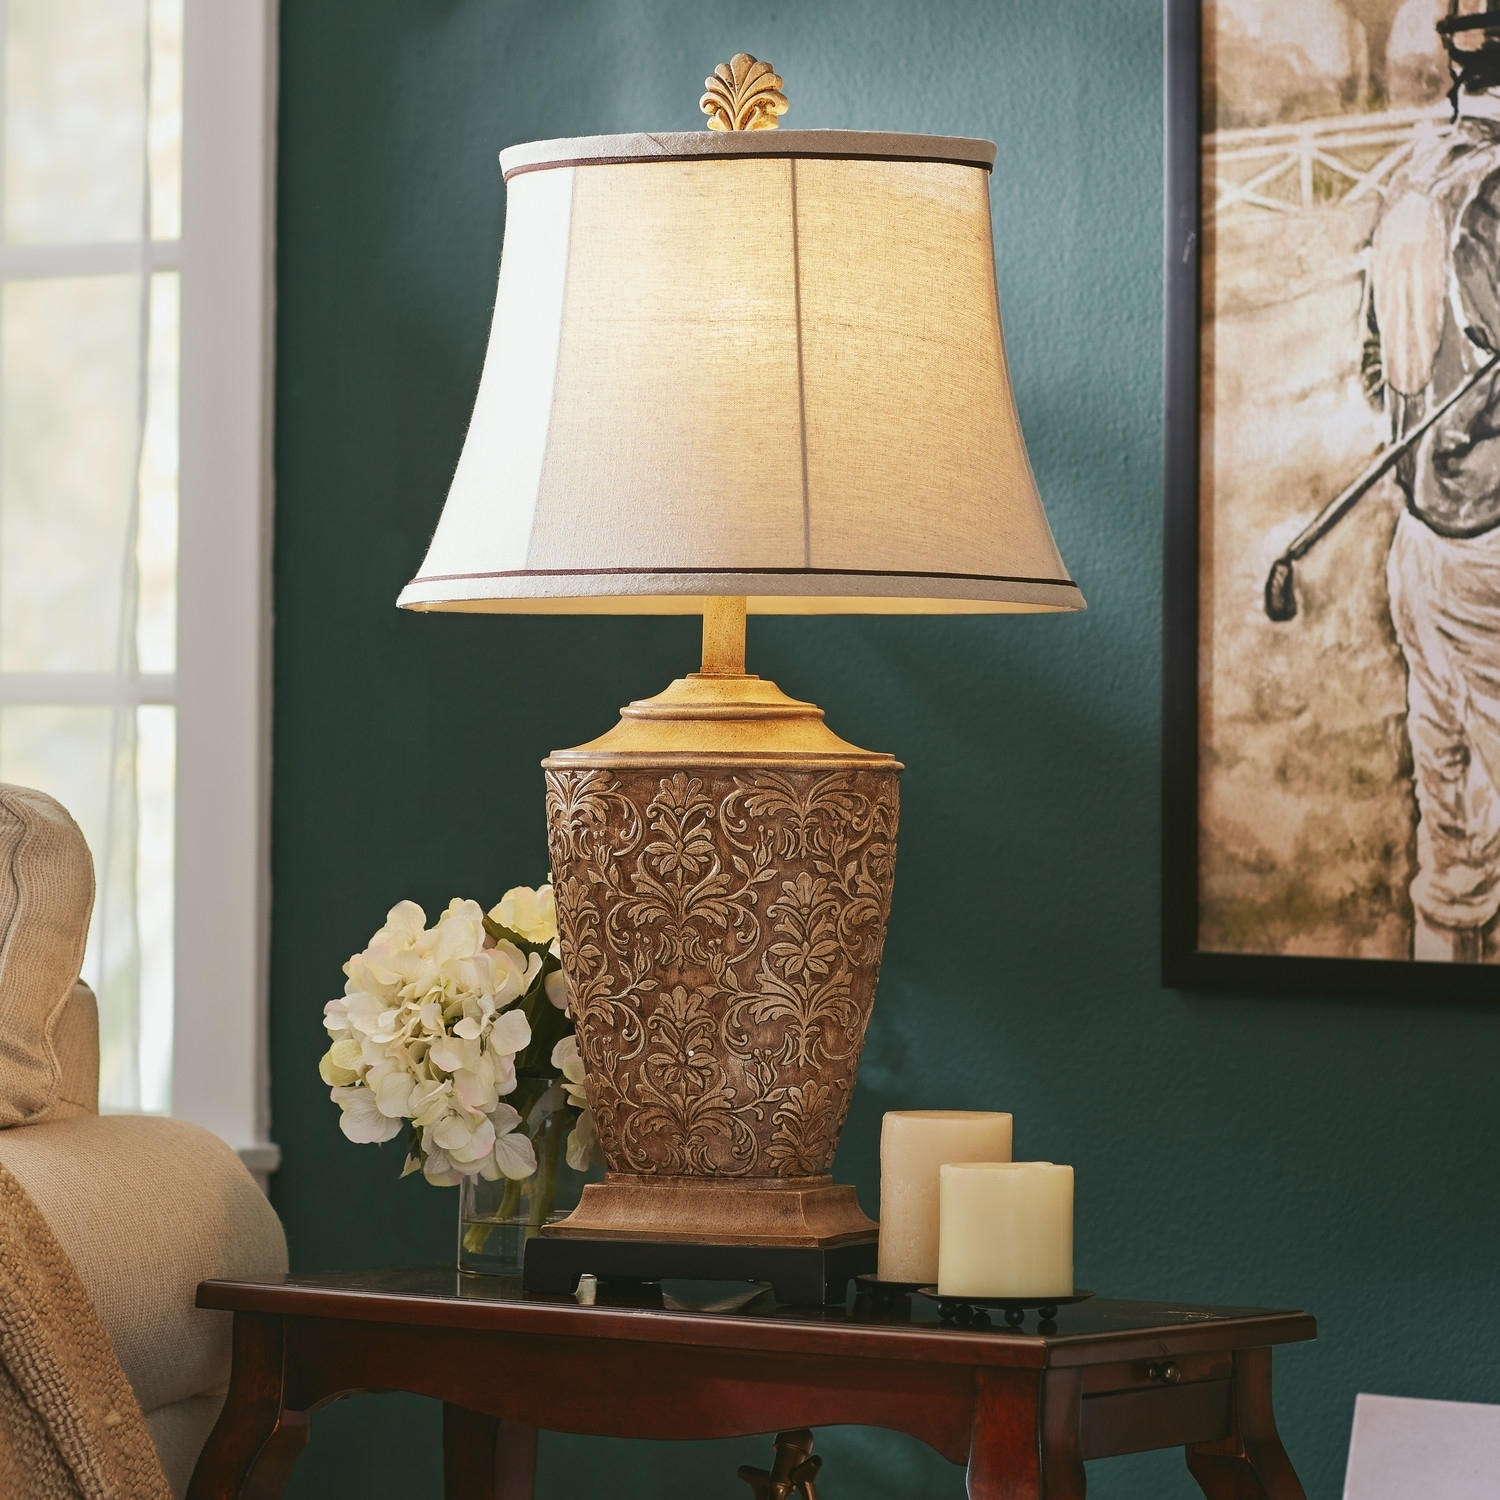 Popular Photo of Luxury Living Room Table Lamps